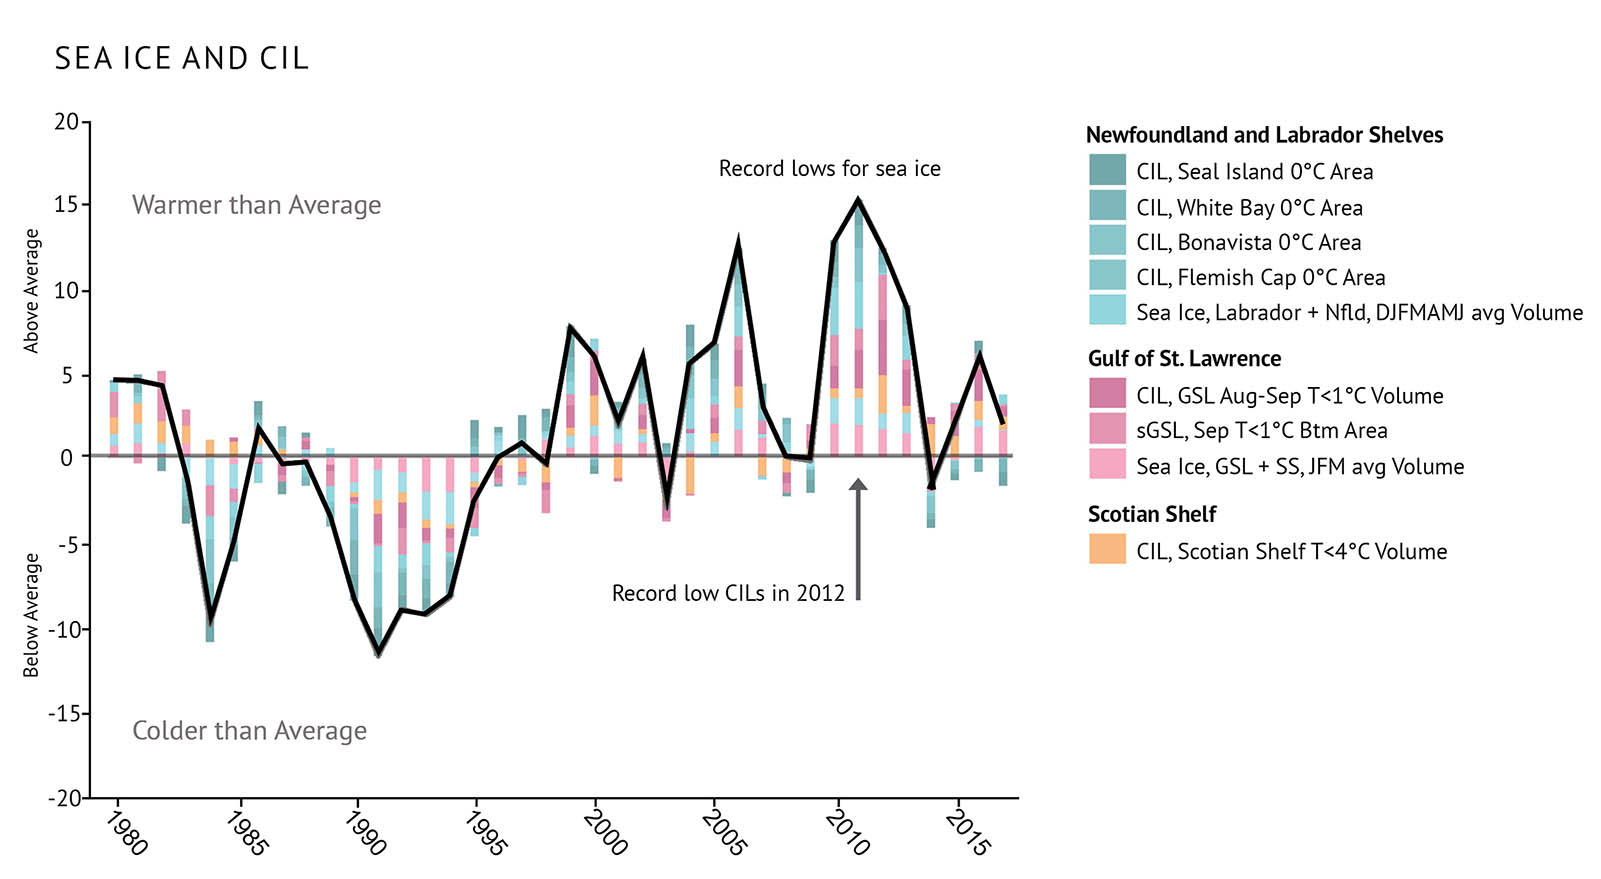 "Figure 5: Index of cold intermediate layer (CIL) and sea ice volume for the Atlantic bioregions relative to the long-term average (1981-2010). The black trend line represents the combined anomalies for all areas (sGSL: southern Gulf of St. Lawrence; see Figure 1 for NAFO Divisions). Above average trends are seen when warming conditions lead to less sea ice and a weak CIL. A combined line and bar graph illustrates the fluctuations in the index of cold intermediate layer (CIL) and sea ice volume for the Atlantic bioregions between 1980 and 2017 for the three Atlantic bioregions. Text above the graph says ""Sea ice and CIL"". The vertical axis at left shows numbers from -20 to 20 in increments of 5, with a thin black zero-line extending across the graph. Text left of the vertical axis and above the zero-line says ""above average"" and text under the zero-line says ""below average"". The horizontal axis shows years between 1980 and 2015 in 5 year increments. On the left-hand side of the graph, text above the zero line says ""warmer than average"" and text below the zero-line says ""colder than average"". A legend sits at right showing the colours for areas within each bioregion illustrated as stacked bars on the graph. Areas within the Newfoundland and Labrador Shelves are in shades of blue, areas within the Gulf of St. Lawrence are in shades of pink, and areas within the Scotian Shelf are in shades of orange. A thick black line extends between the vertical and horizontal axes showing the combined trend, with the line being generally below average in the early 1990s and then above average after the late 1990s. On the right-hand side of the graph, text reading ""Record lows for sea ice"" floats above the trend line near 2010. Below the zero-line on the right-hand side of the graph, a line of text reads ""Record low CILs in 2012"" with an arrow pointing at 2012."